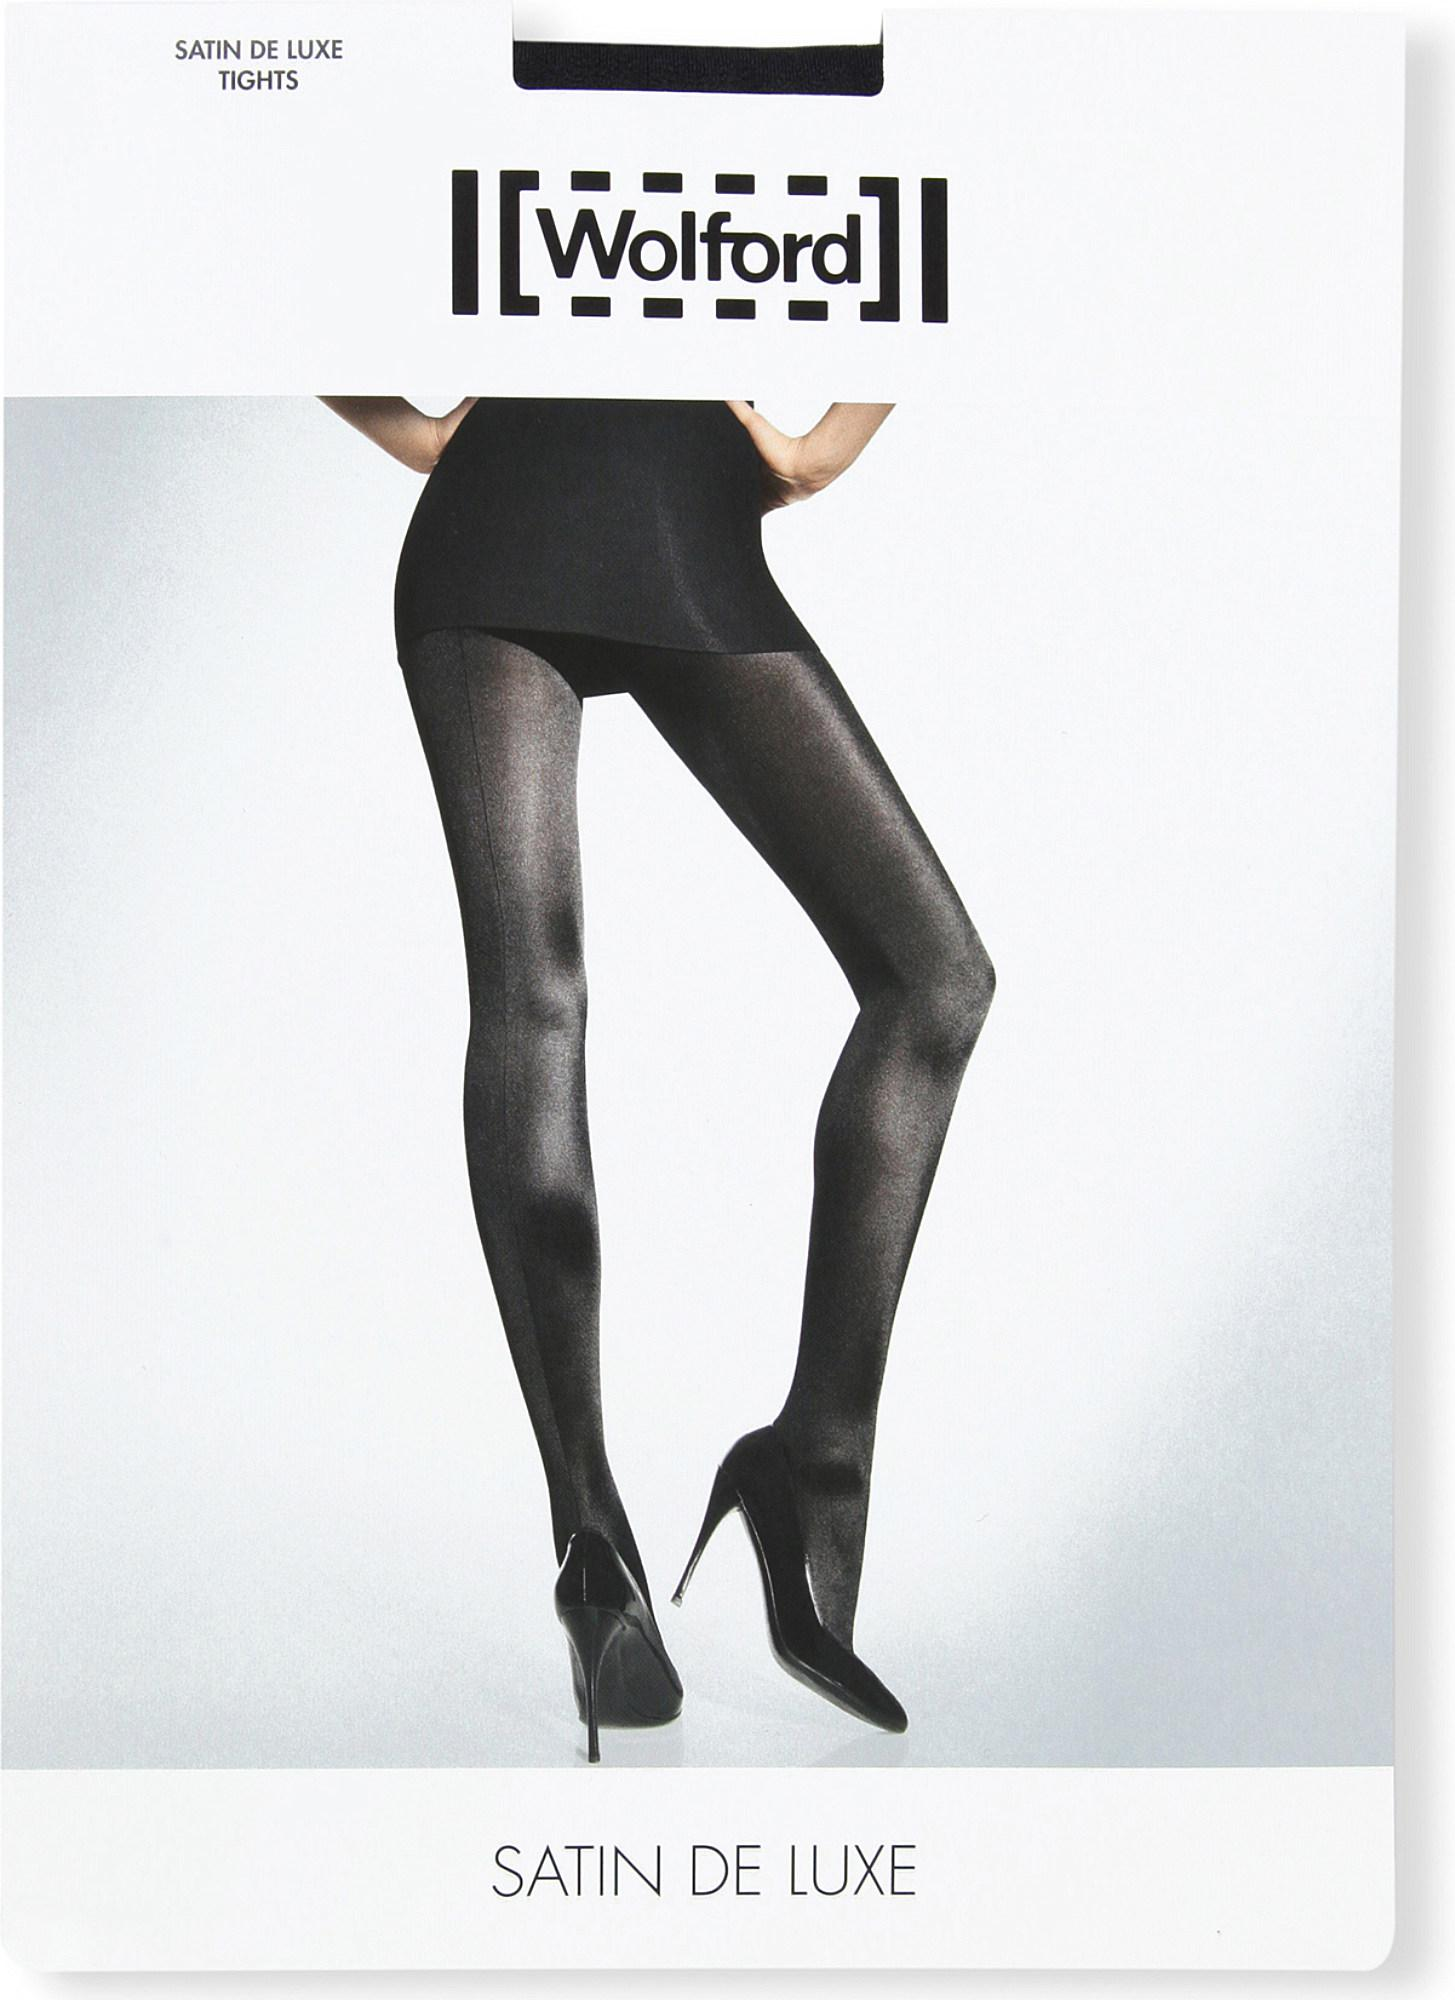 f22060699 Wolford Satin De Luxe 50 Tights in Black - Lyst